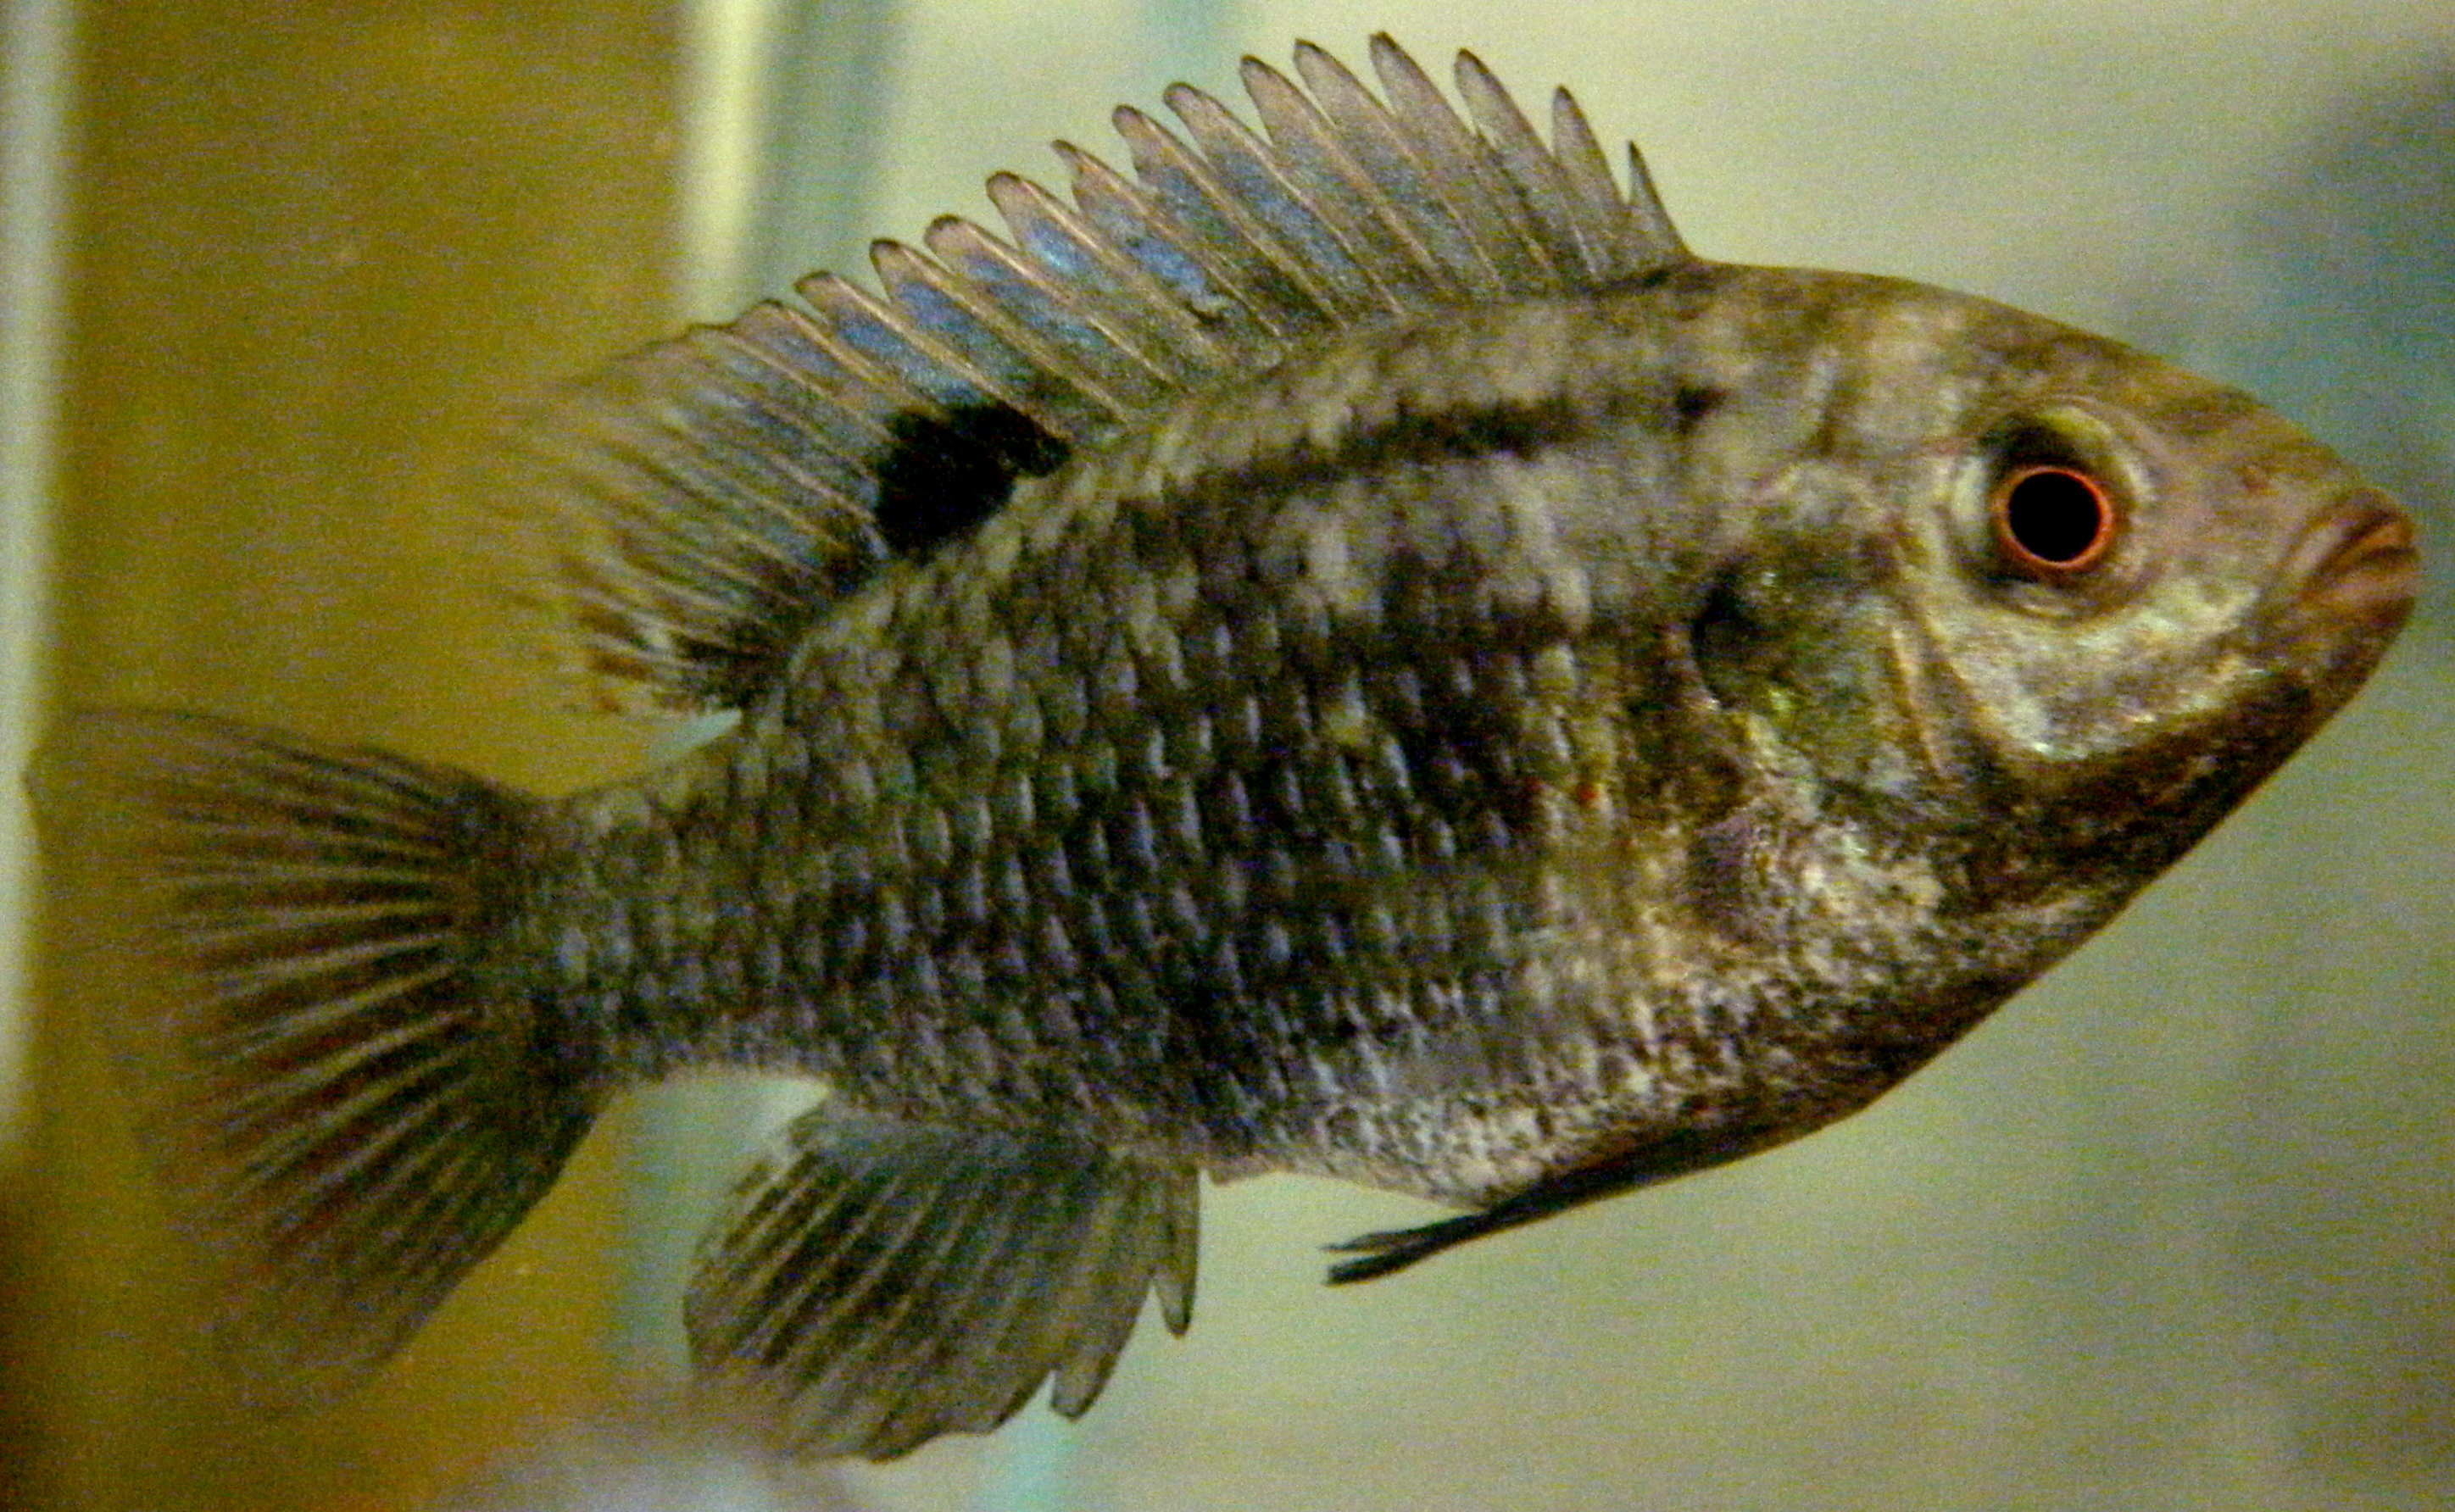 Tilapia genus wikipedia for What kind of fish is tilapia